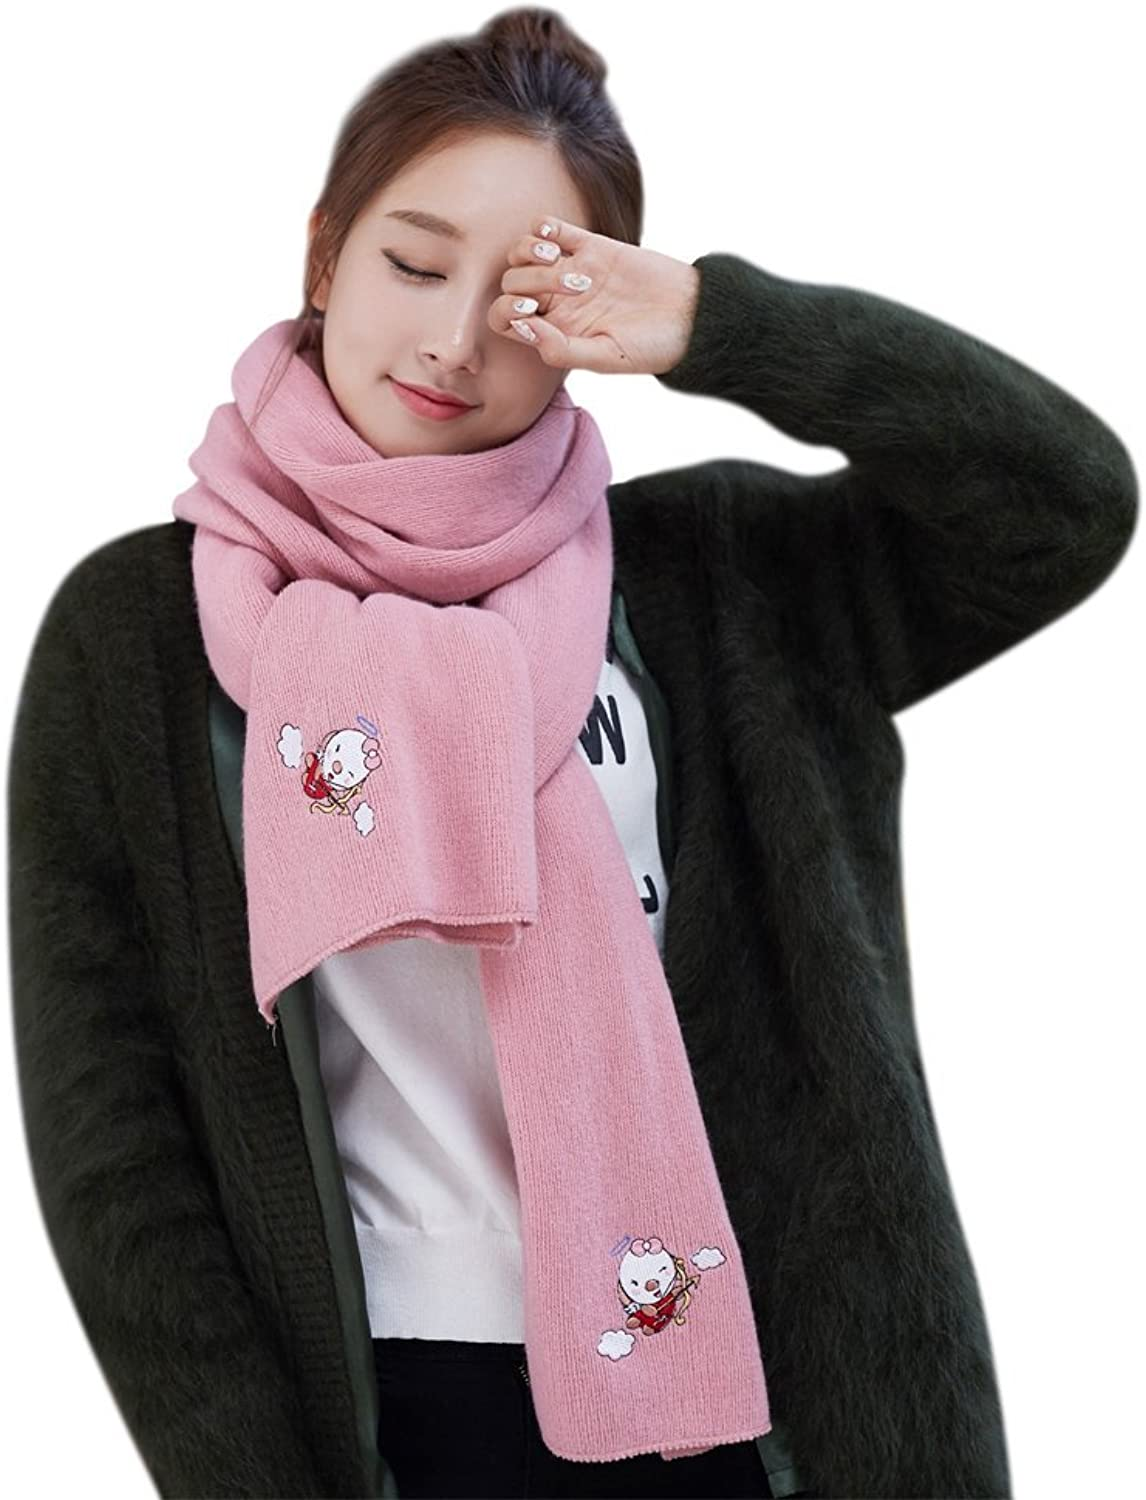 677888 Scarf Female Winter Cartoon Embroidered Cashmere Scarf for Autumn and Winter